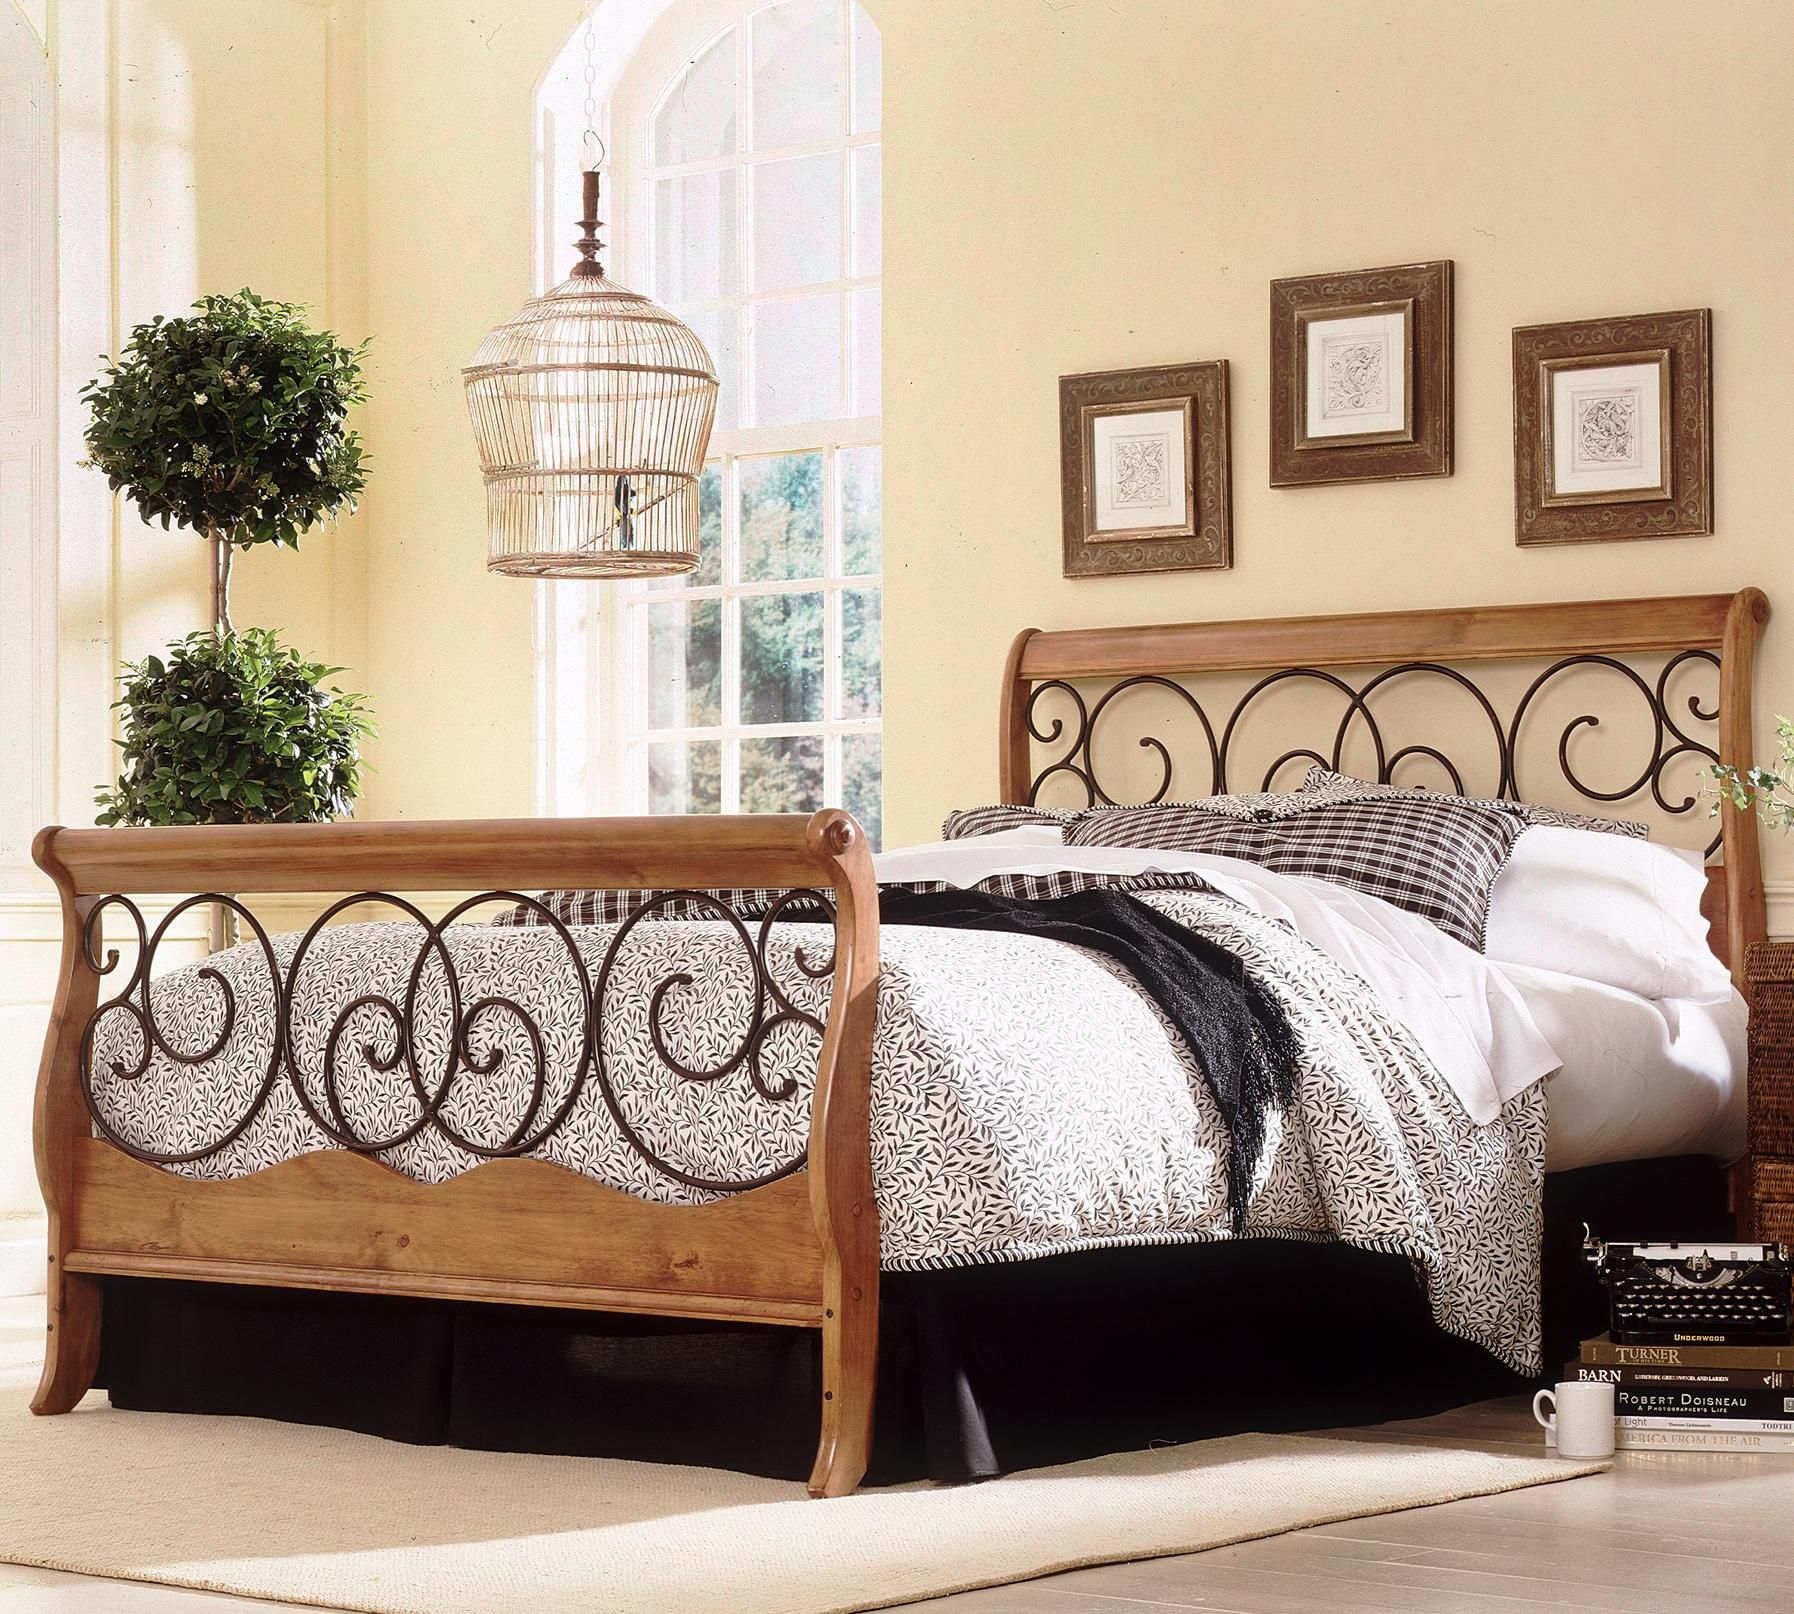 Wood And Metal Beds Queen Dunhill I Headboard By Fashion Bed Group